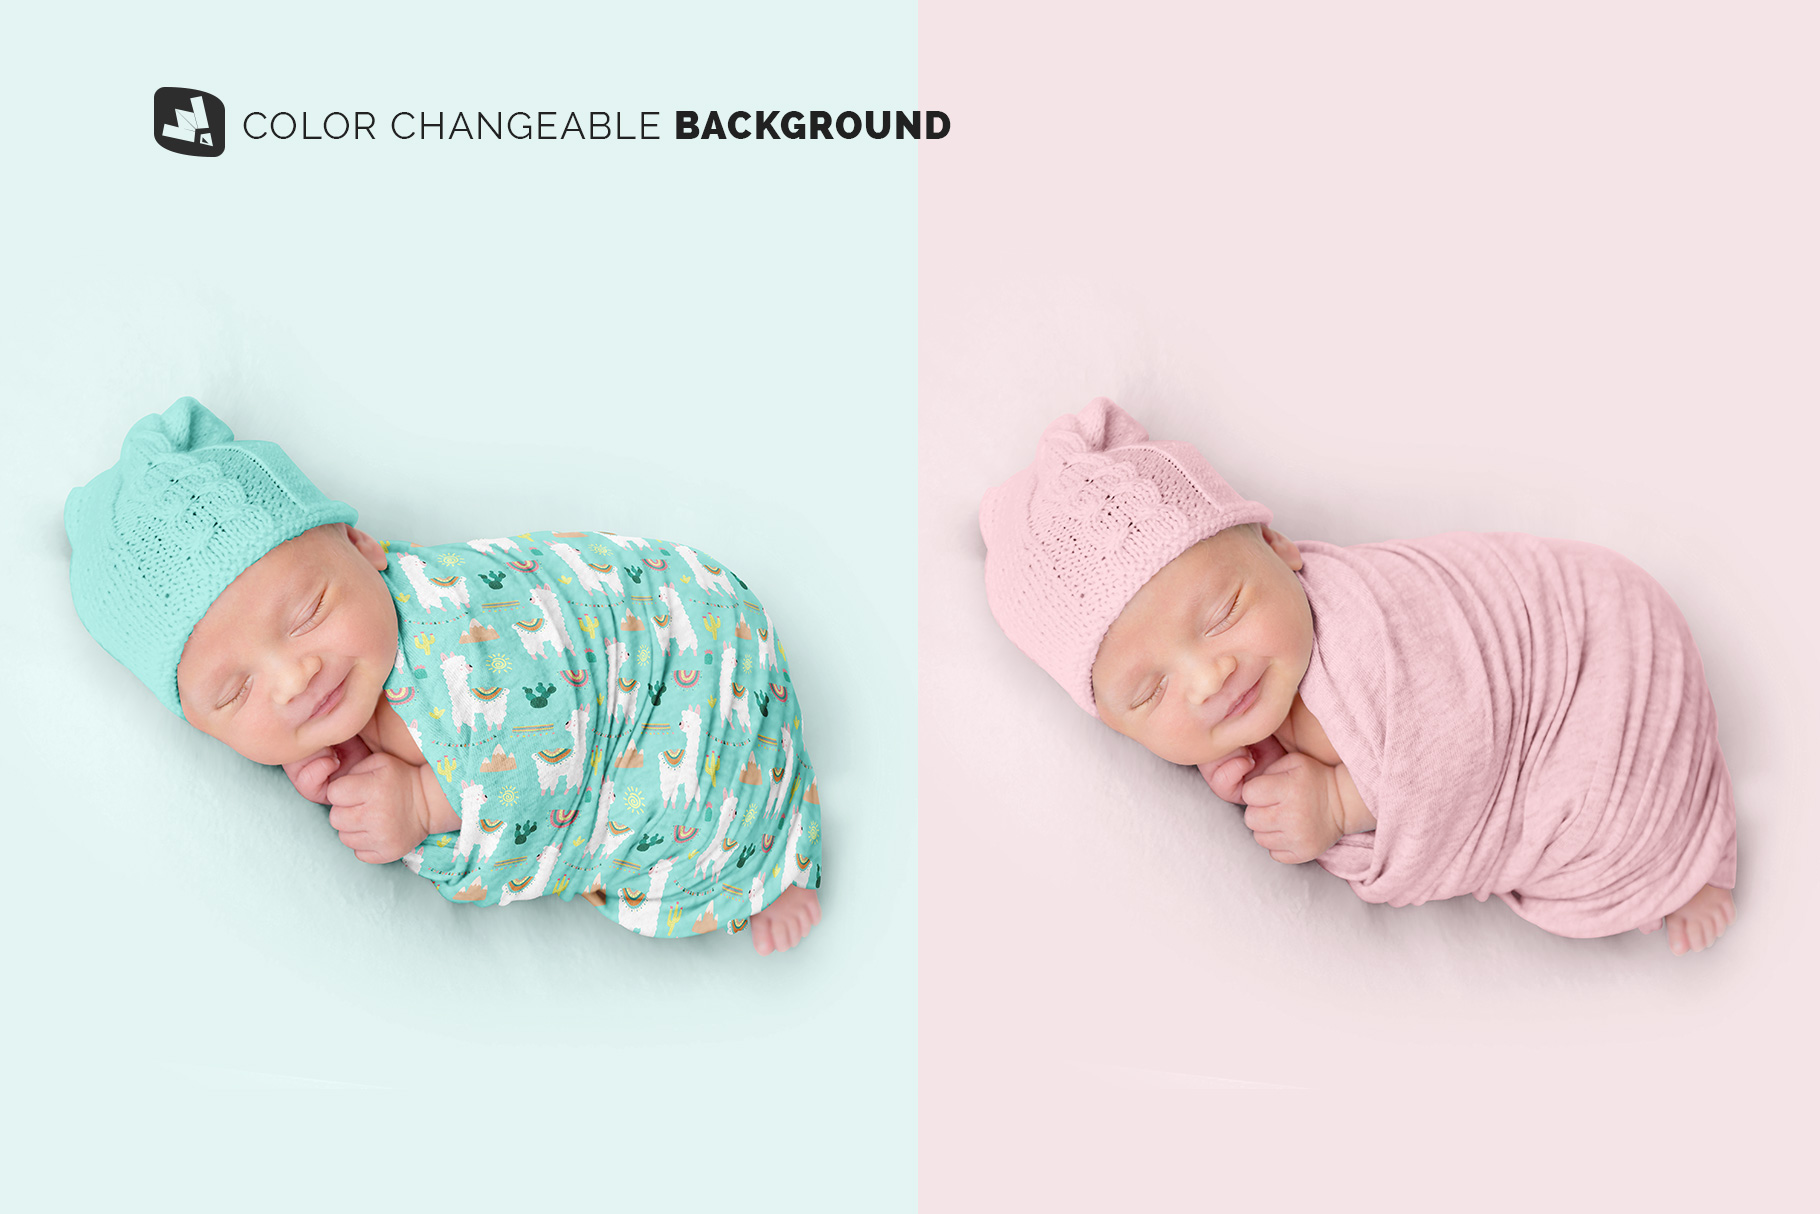 color changeable background of the newborn swaddle blanket mockup